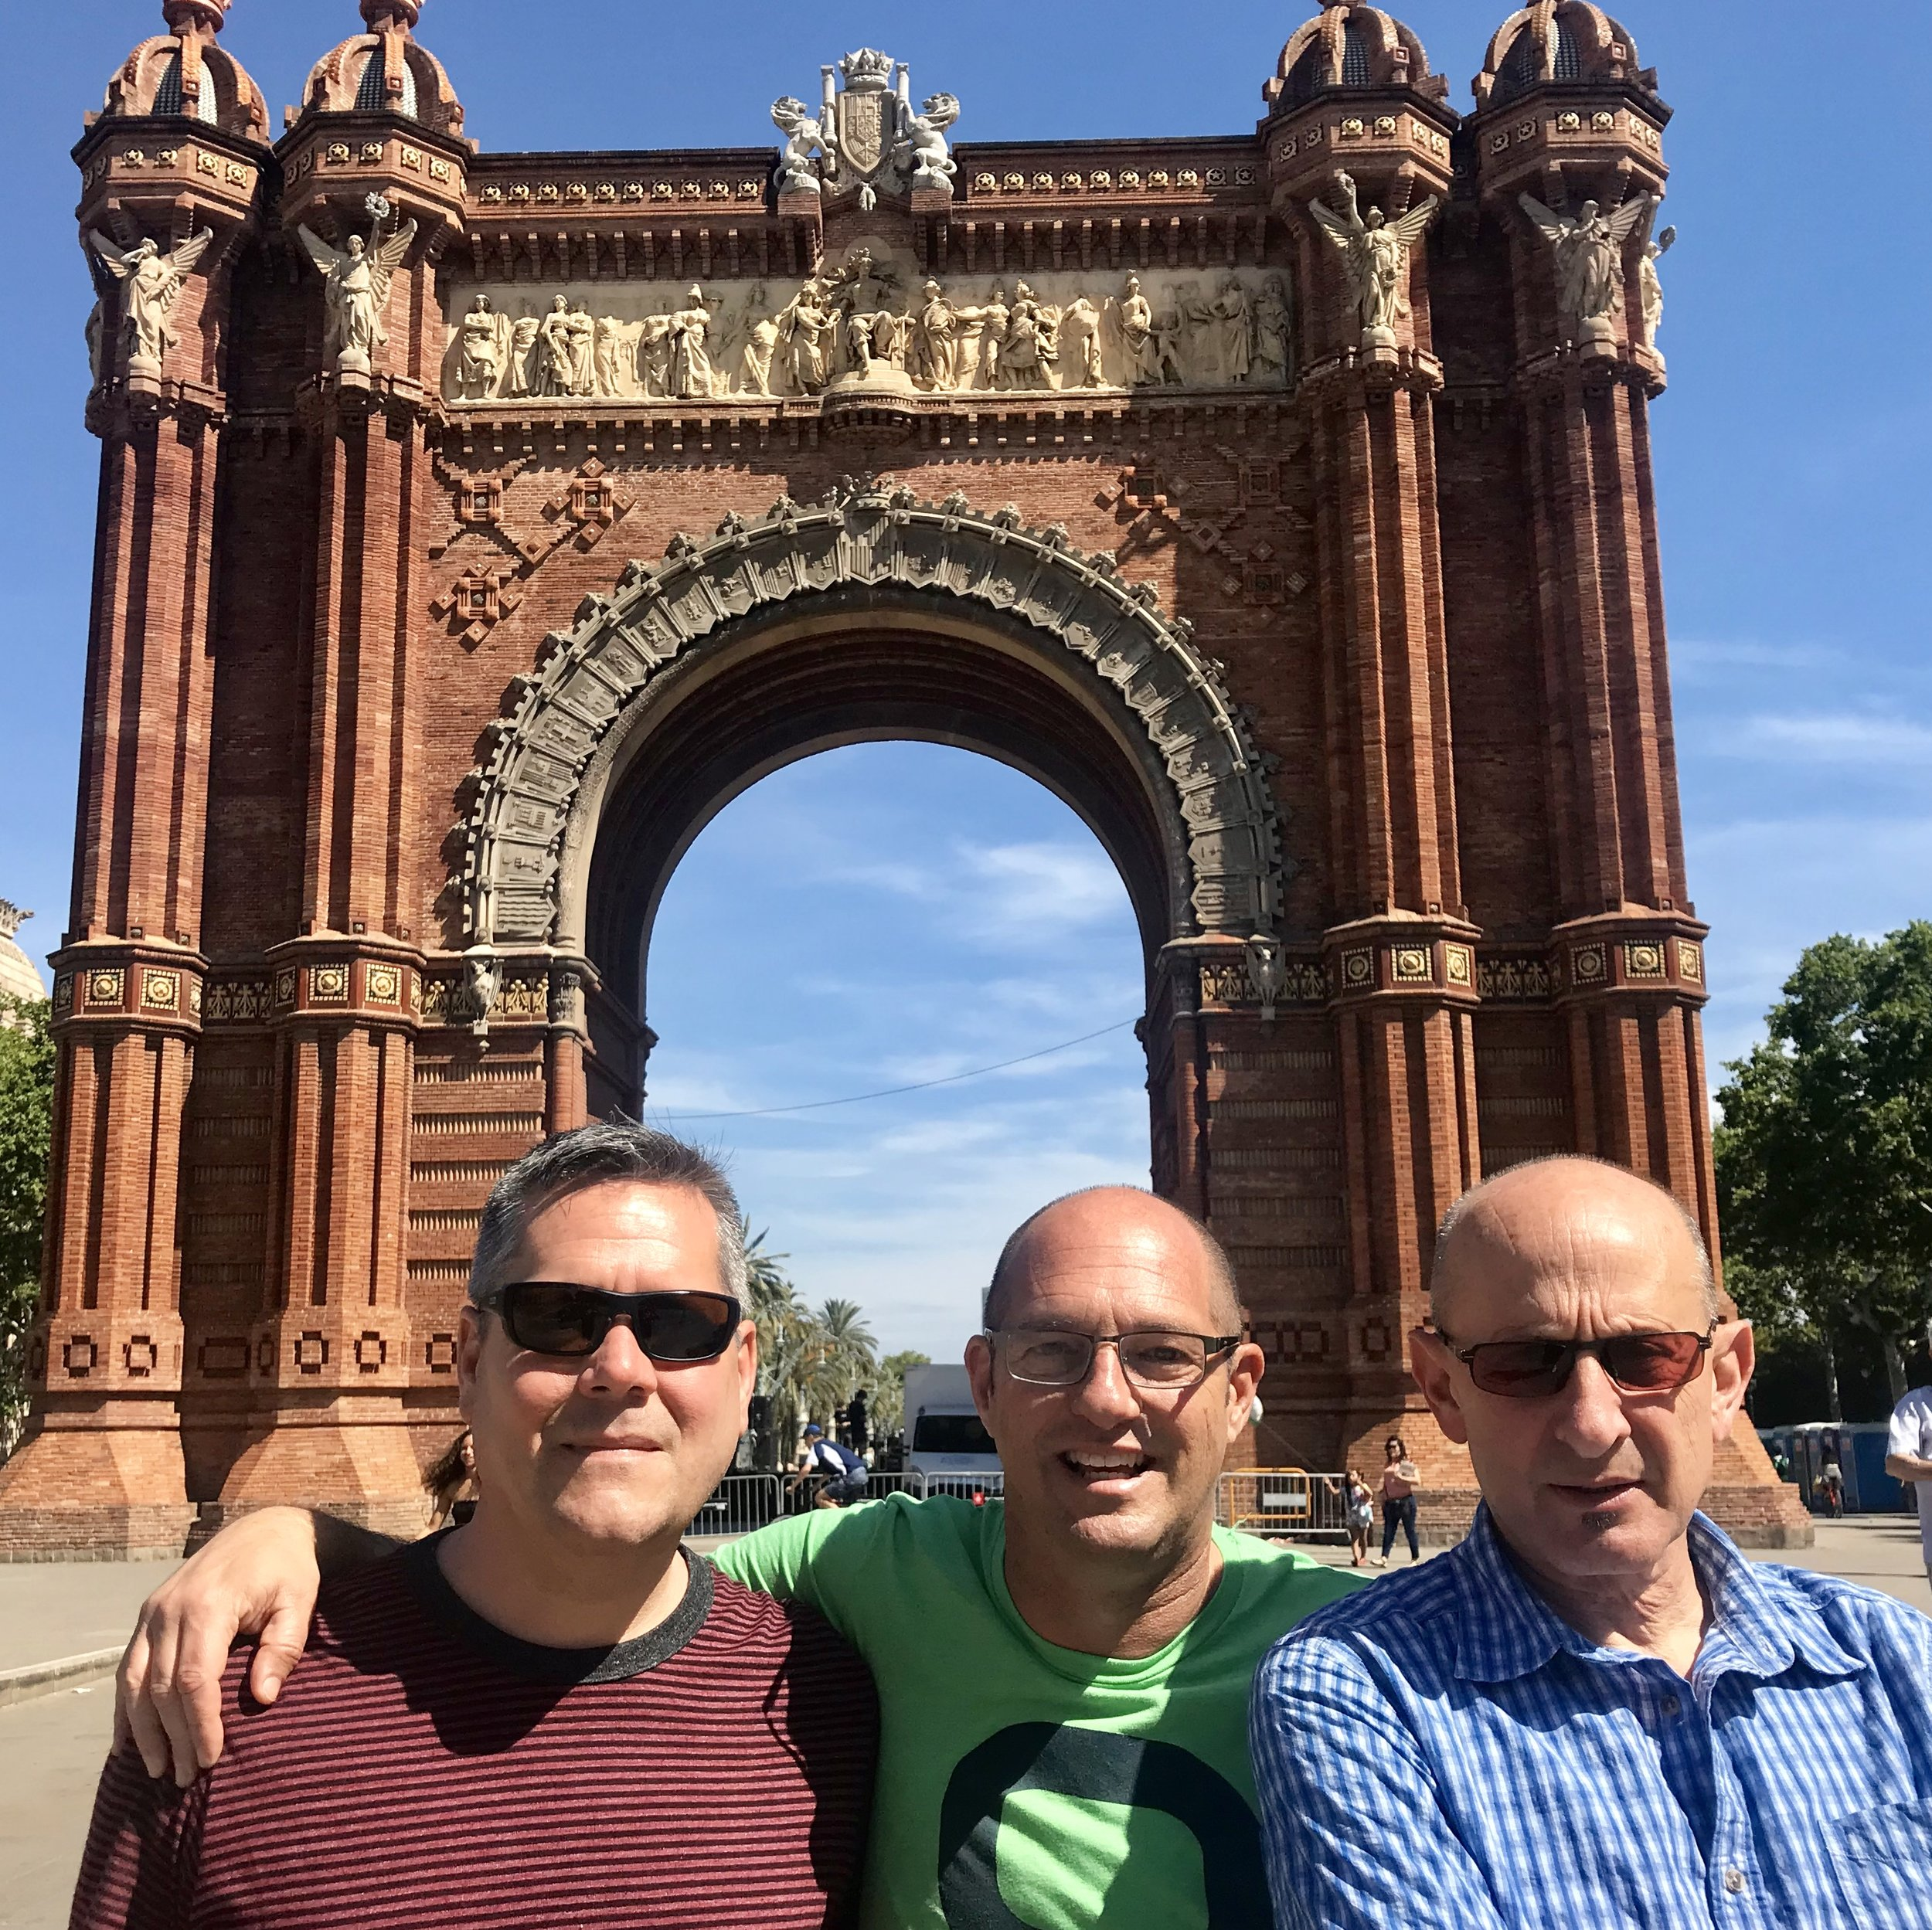 David, Neal, & Jack at BCN's Arco de Triunfo.